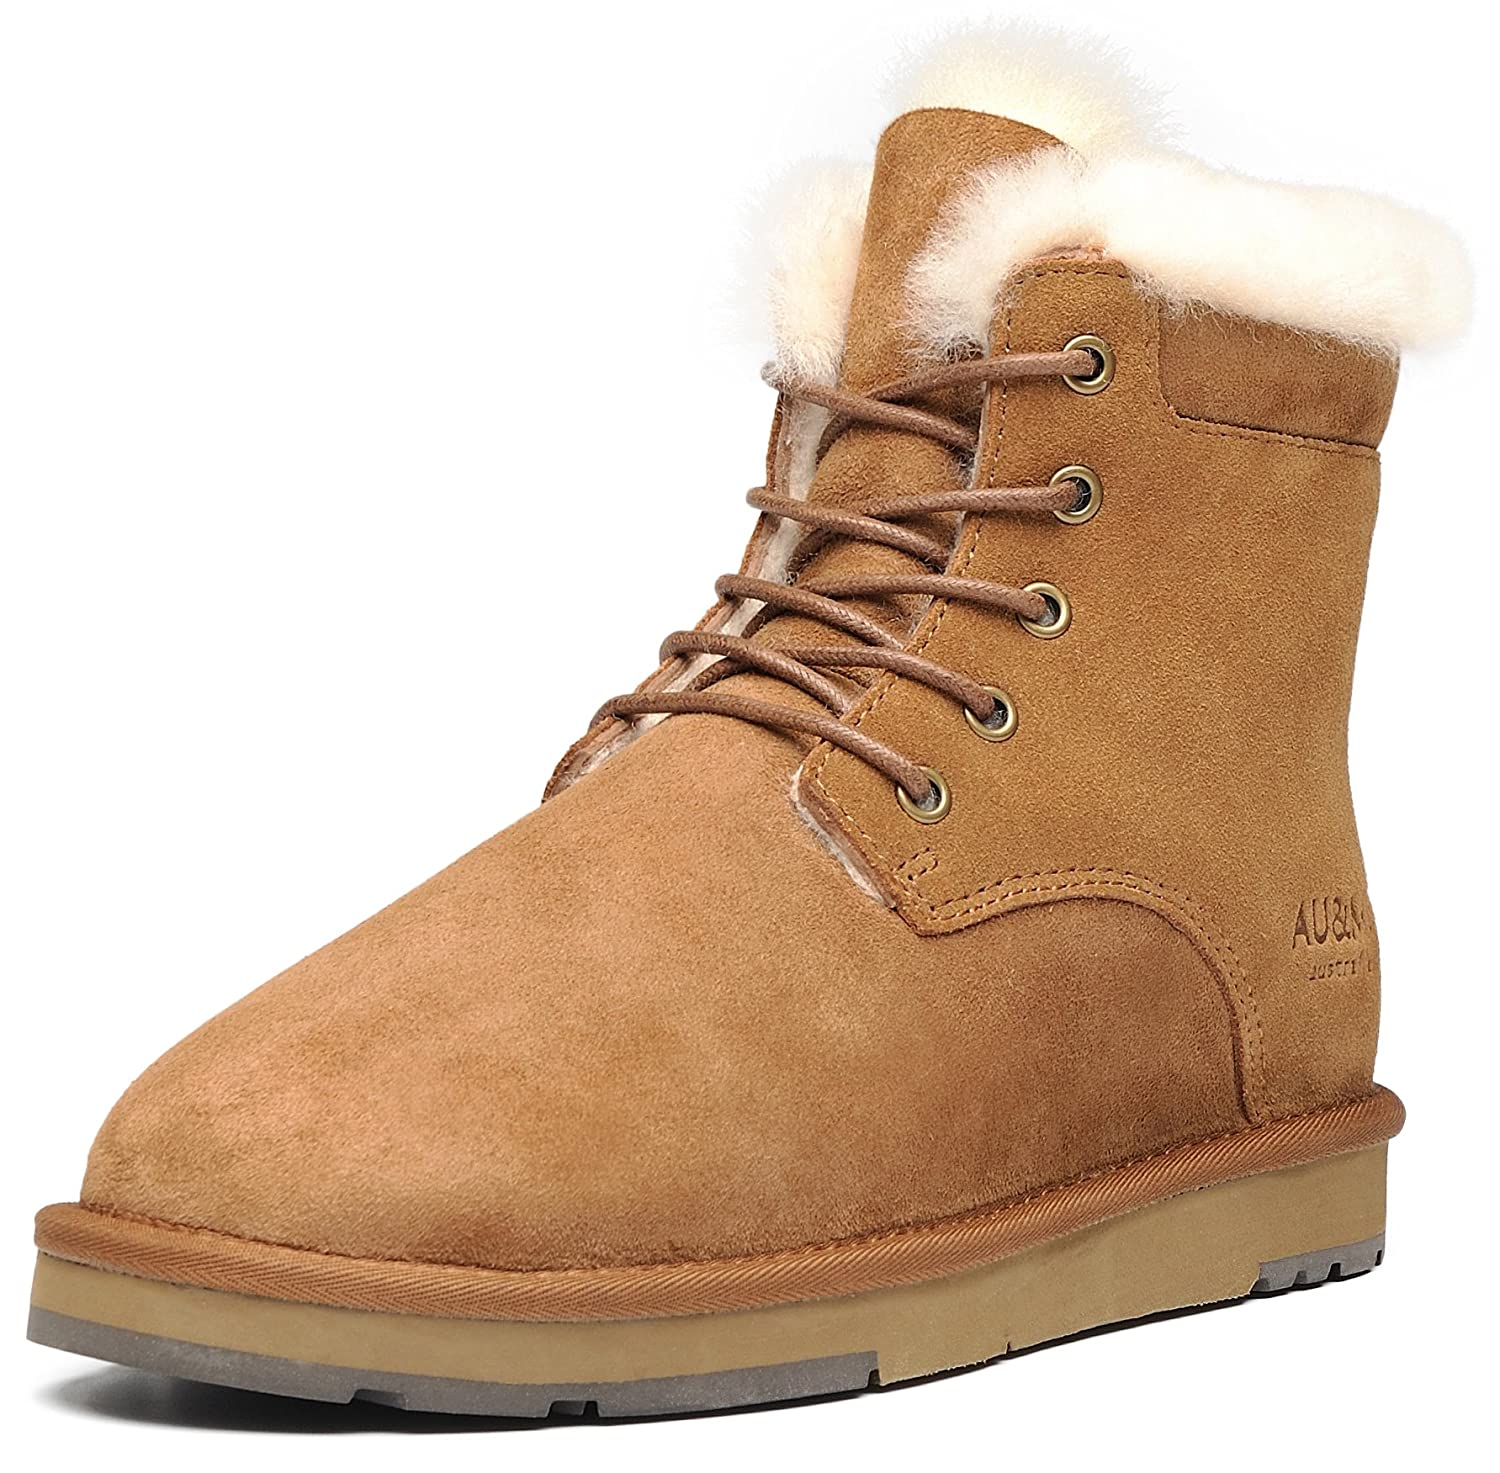 AU&MU Women's Full Fur Sheepskin Suede Winter Snow Boots B073F4QPSQ 10 B(M) US|Chestnut 2